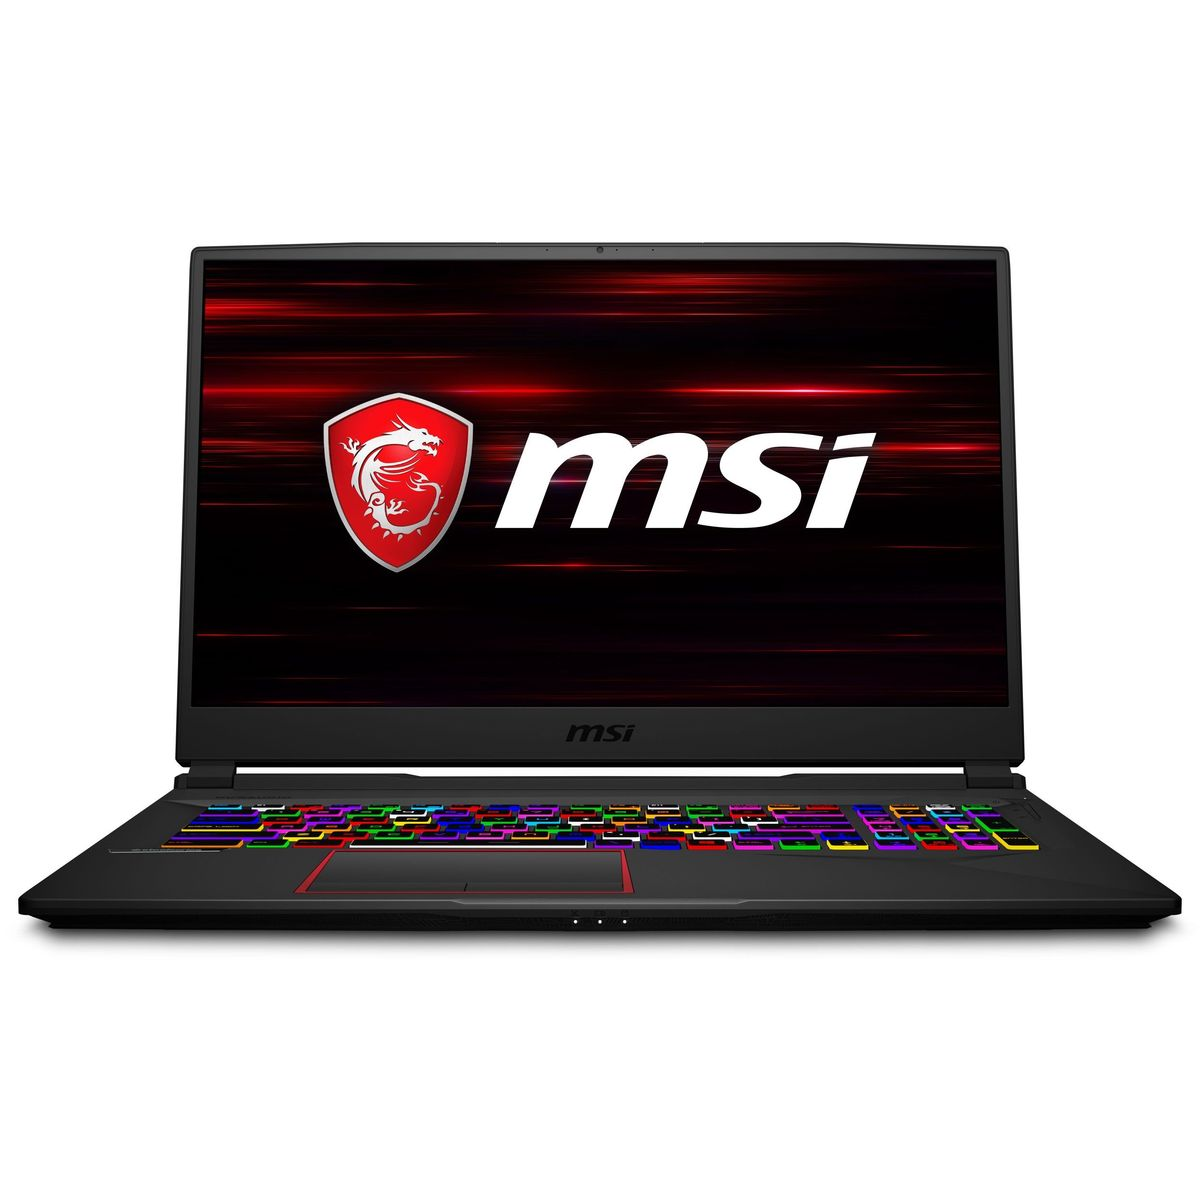 "MSI GE75 Raider 9SF Gaming Laptop i7-9750H 2.6Ghz/16 GB/1 TB HDD + 512 GB SSD/NVIDIA GeForce RTX 2070 8 GB/17.3"" FHD/240Hz Refresh Rate/Wi"